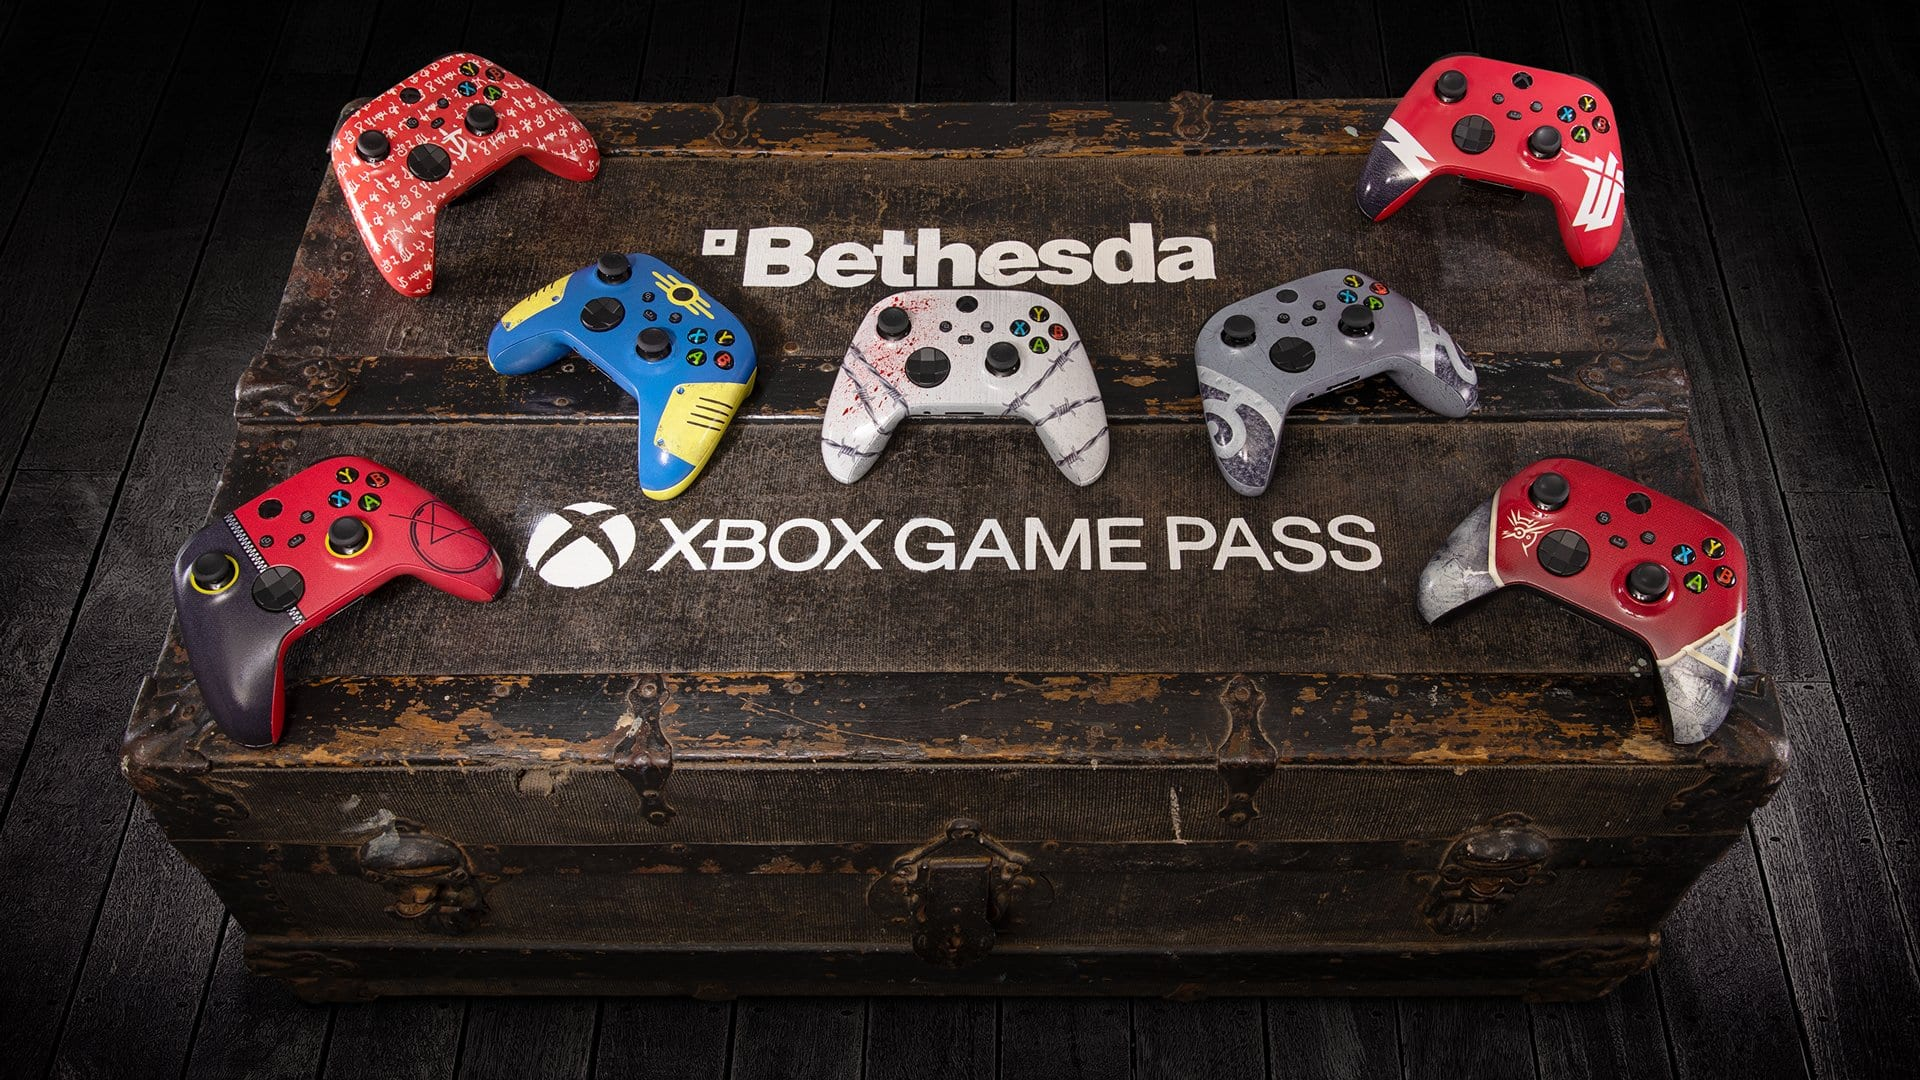 Xbox-Celebrates-Bethesda-Games-With-Exclusive-Controllers-Giveaway.jpg